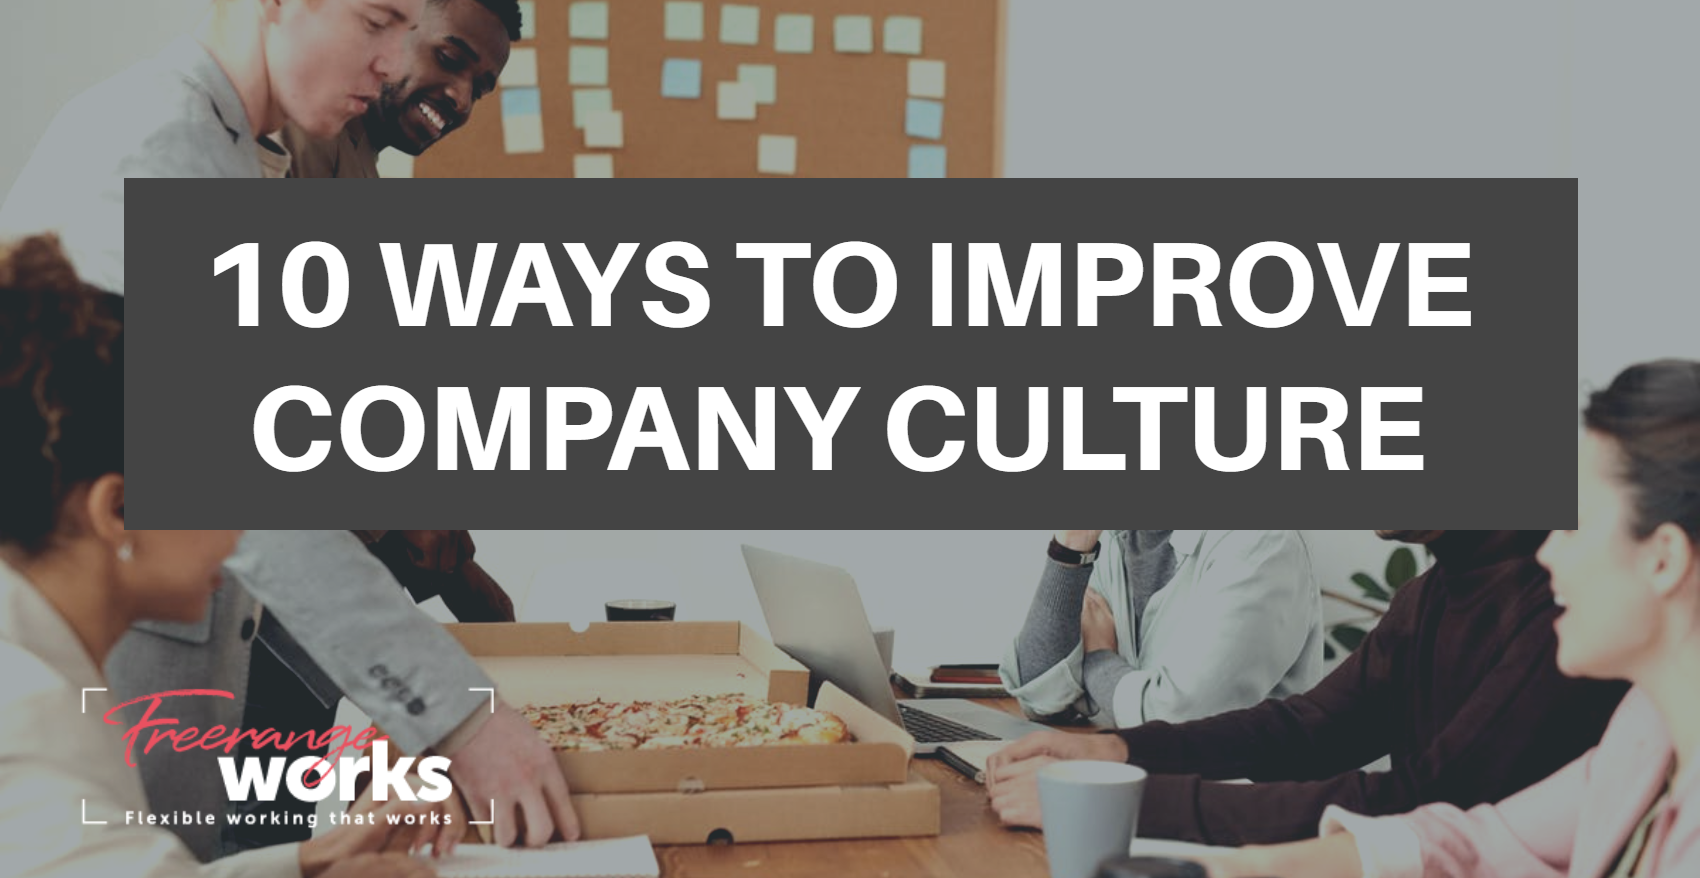 10 practical ways to improve workplace culture